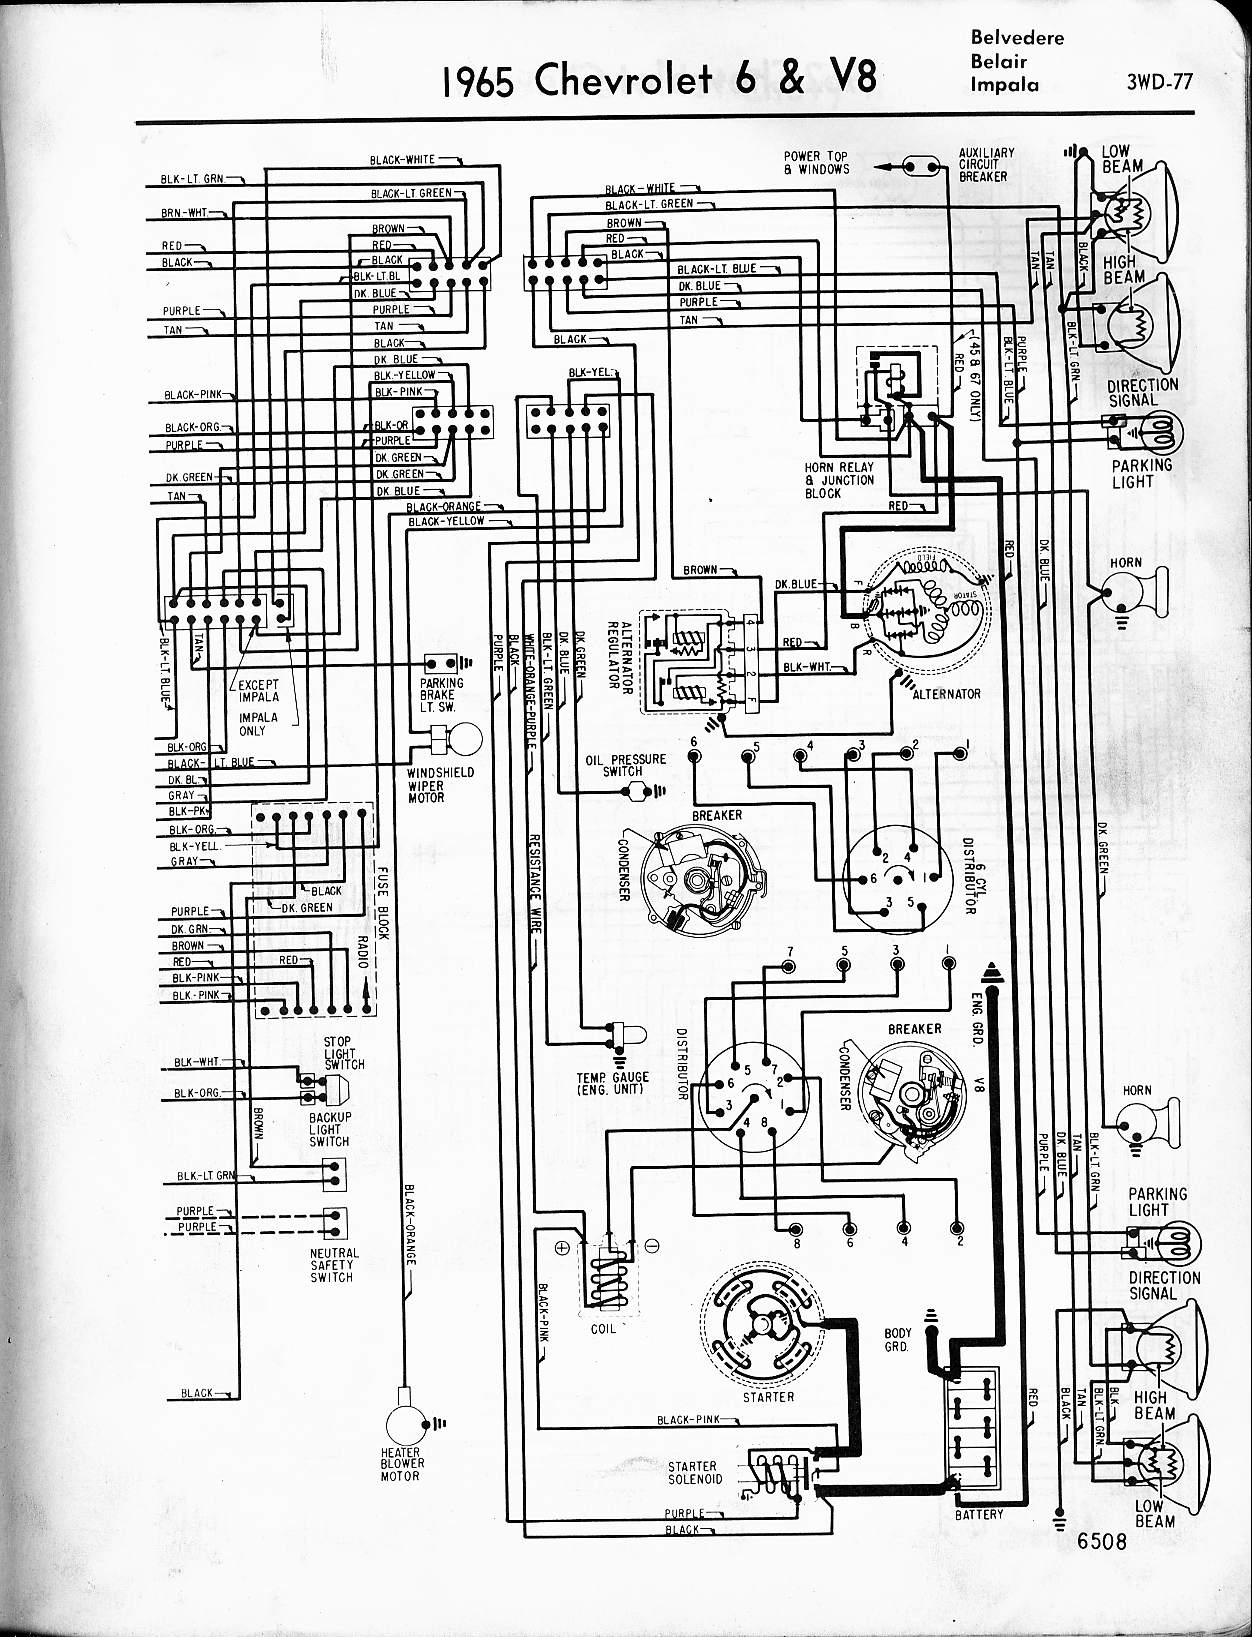 MWireChev65_3WD 077 chevy diagrams Ford Alternator Wiring Diagram at nearapp.co